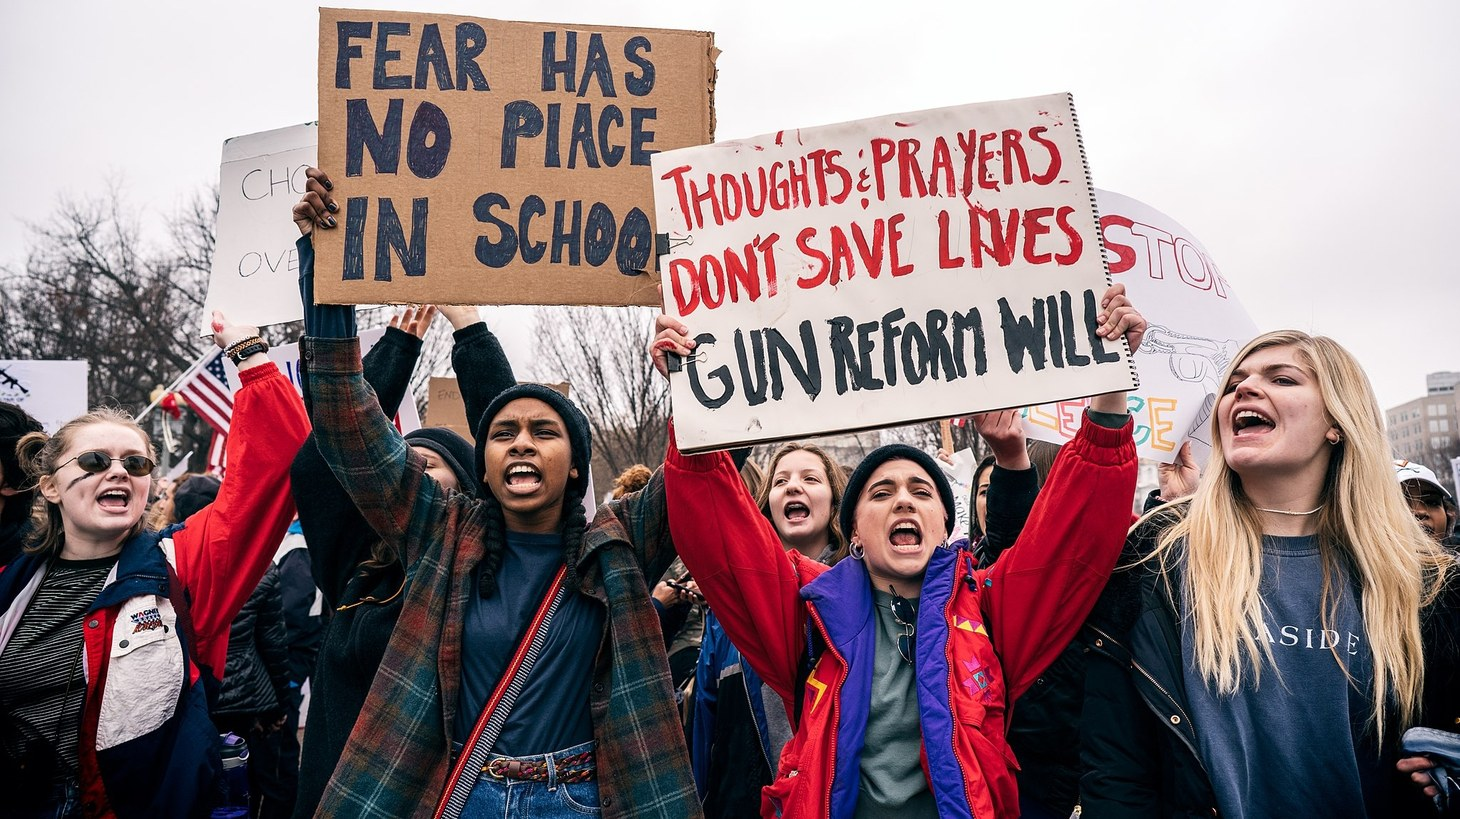 A demonstration organized by Teens For Gun Reform, an organization created by students in the Washington DC area, in the wake of the February 14 shooting at Marjory Stoneman Douglas High School in Parkland, Florida.